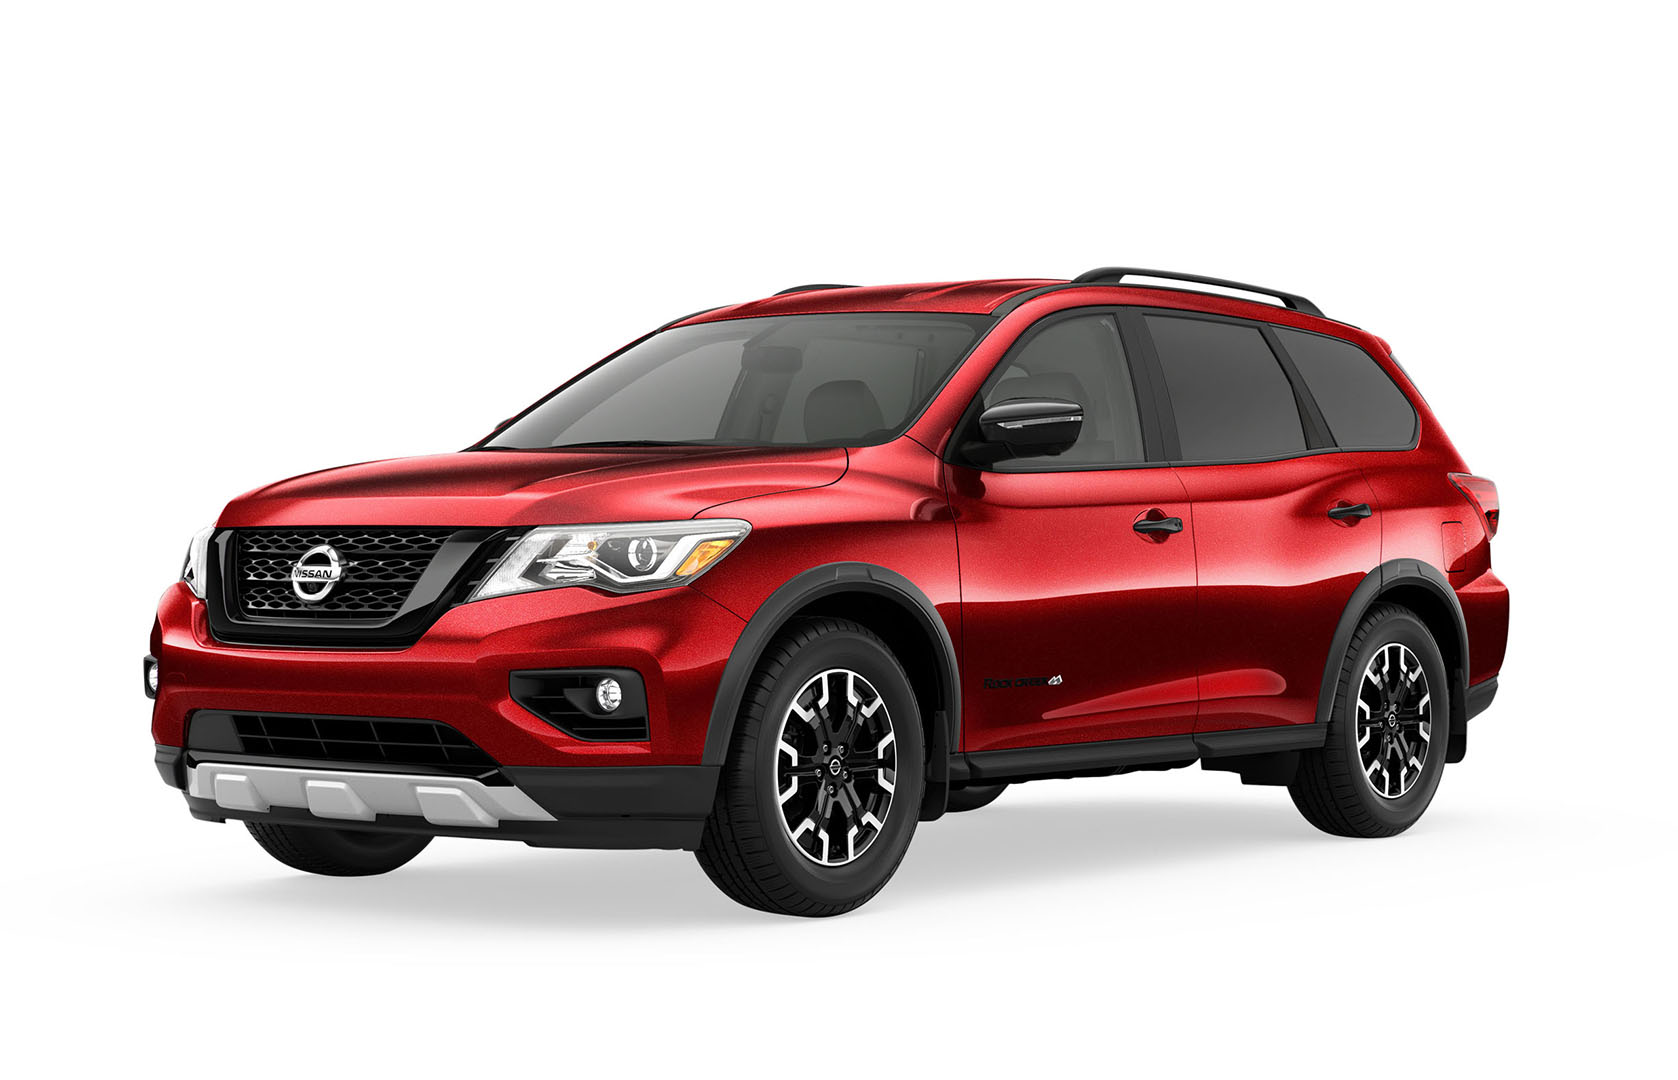 red nissan pathfinder sport utility vehicle